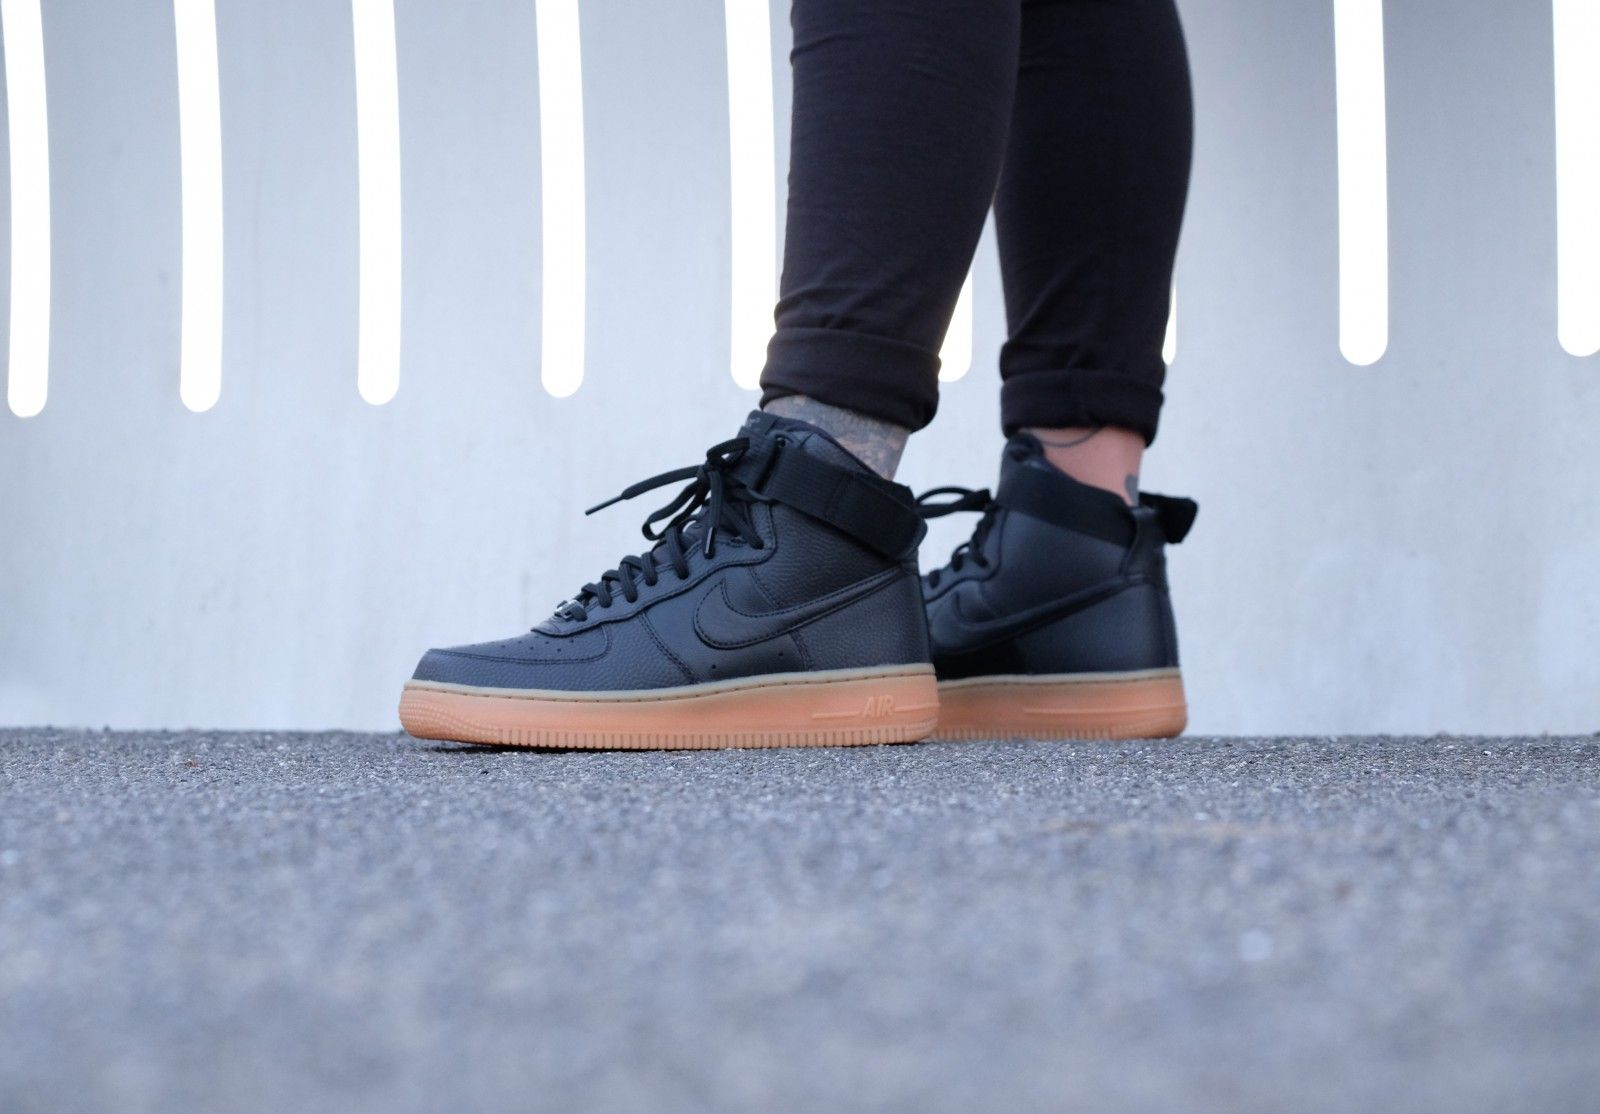 Nike Wmns Air Force 1 Hi SE - Black Dark Grey - 860544-002